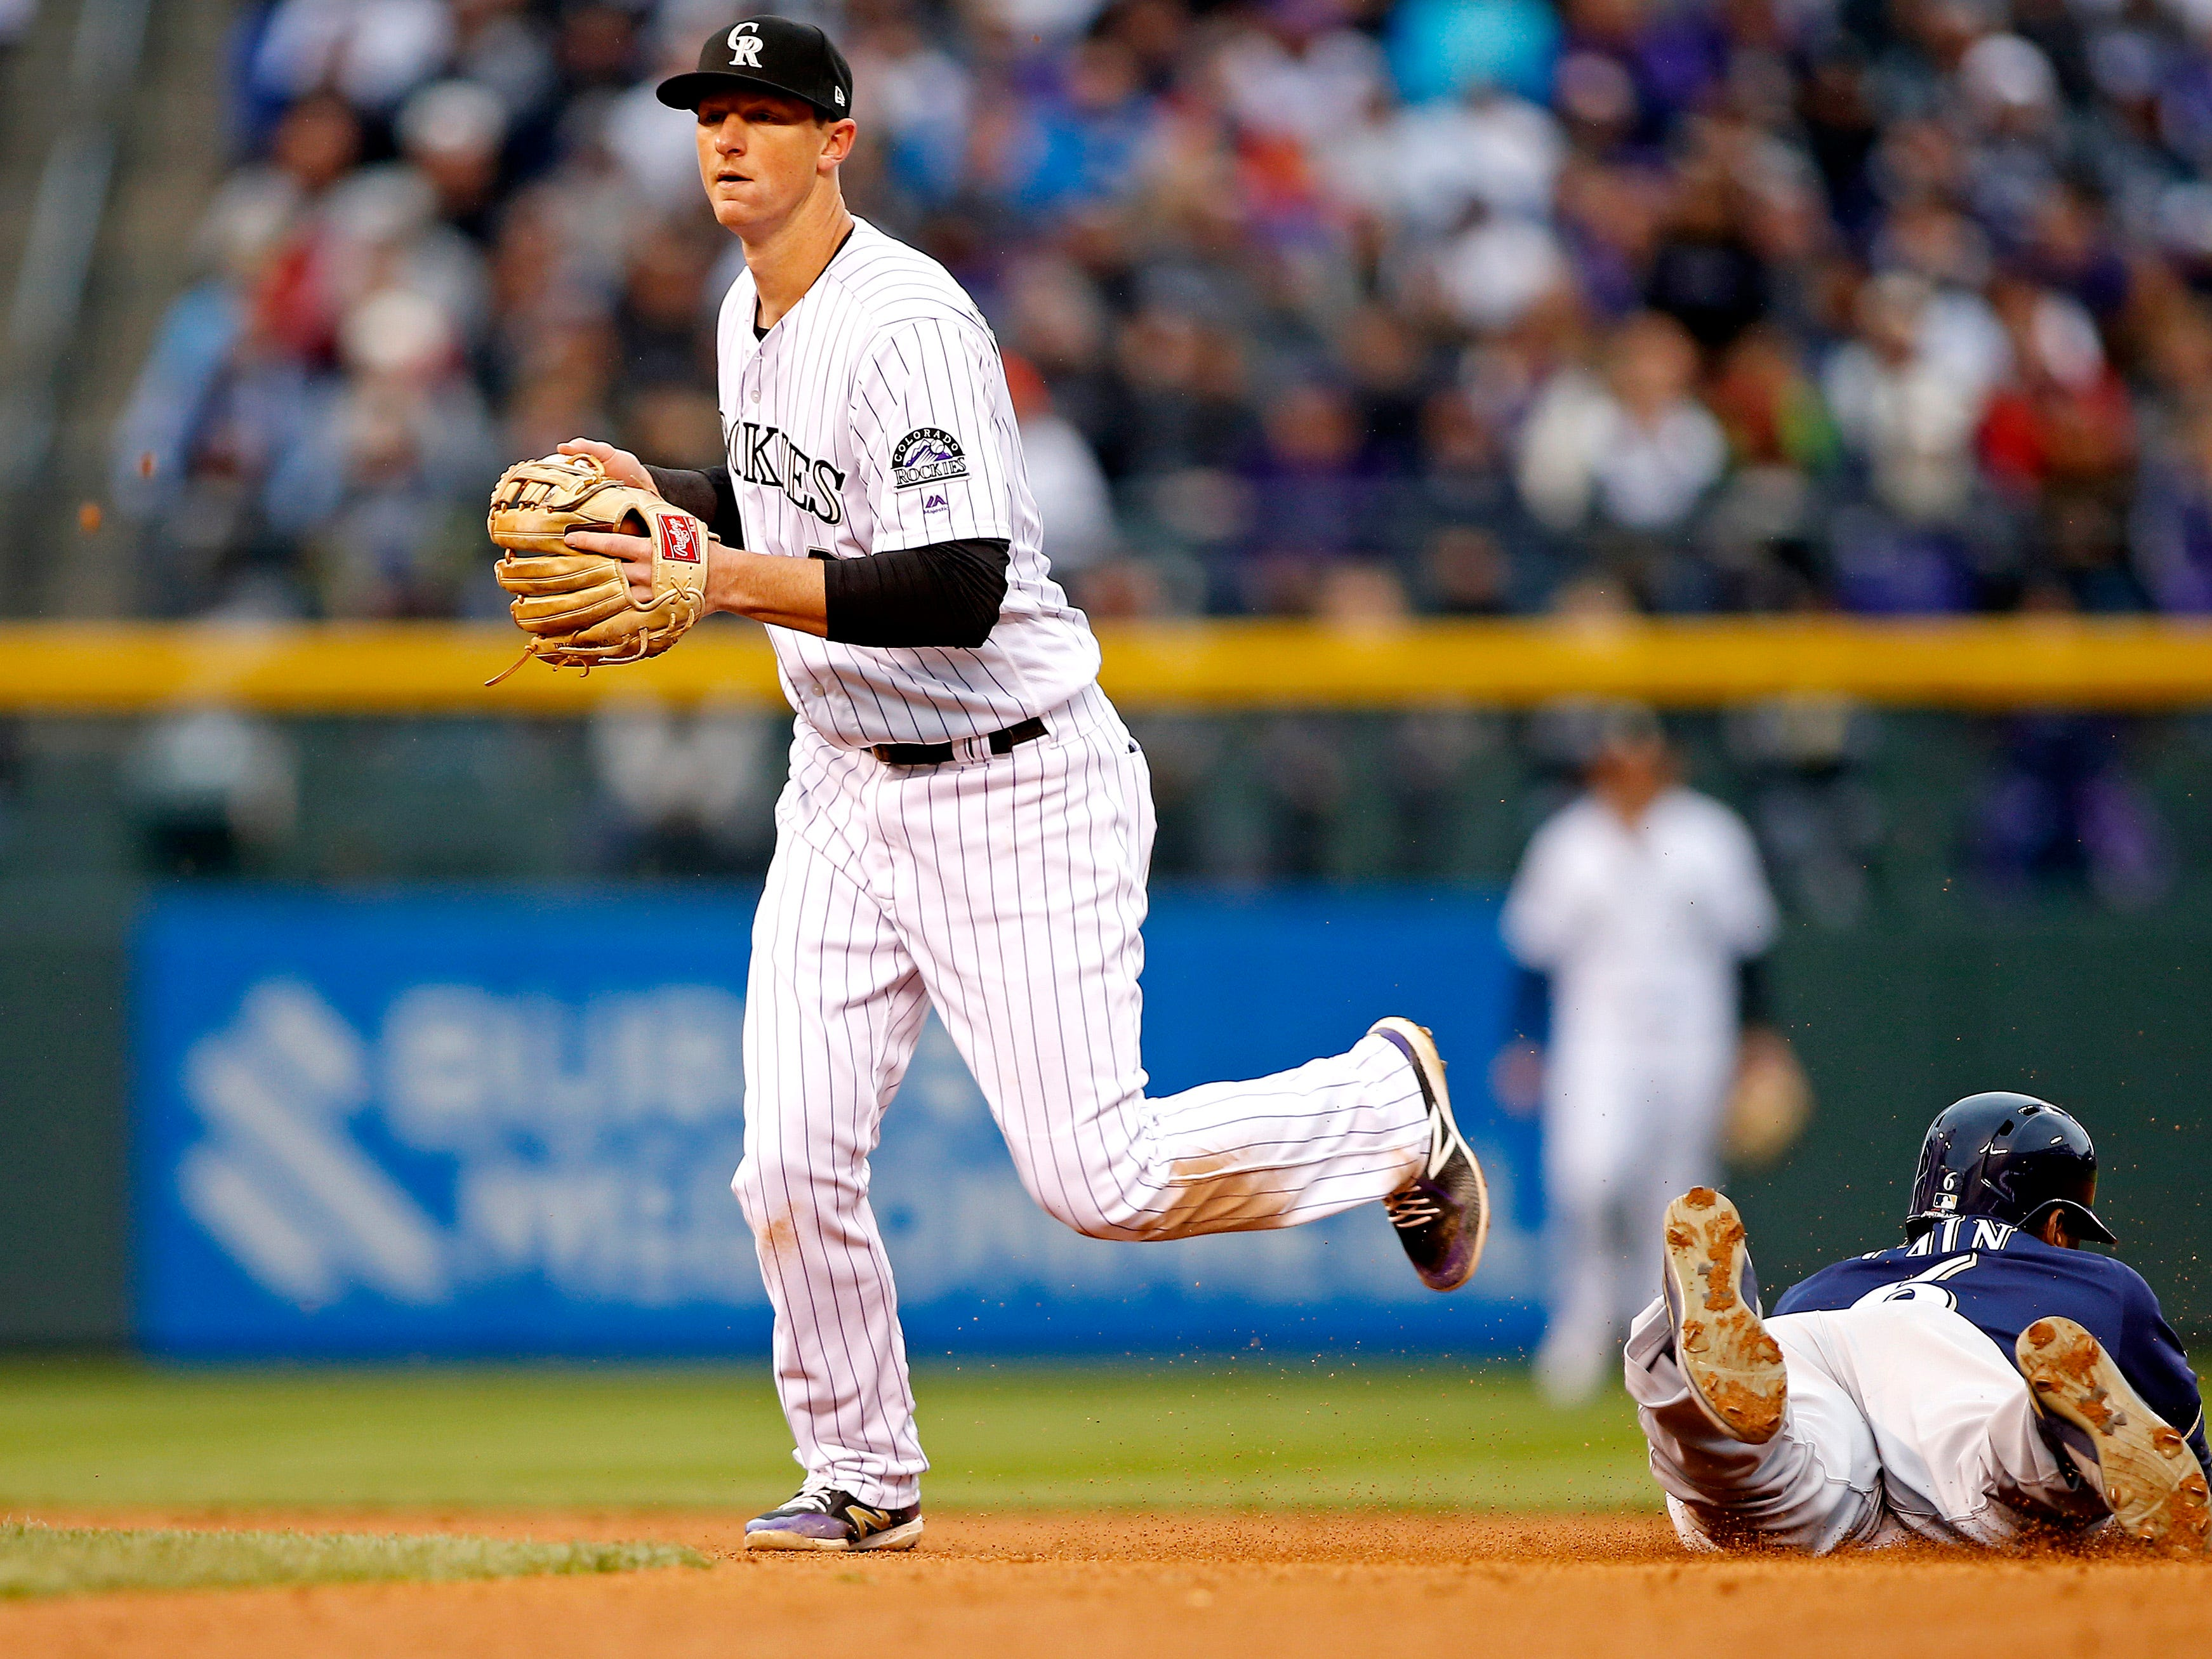 DJ LeMahieu (30, 2B, Rockies) – signed with Yankees, two years/$24 million